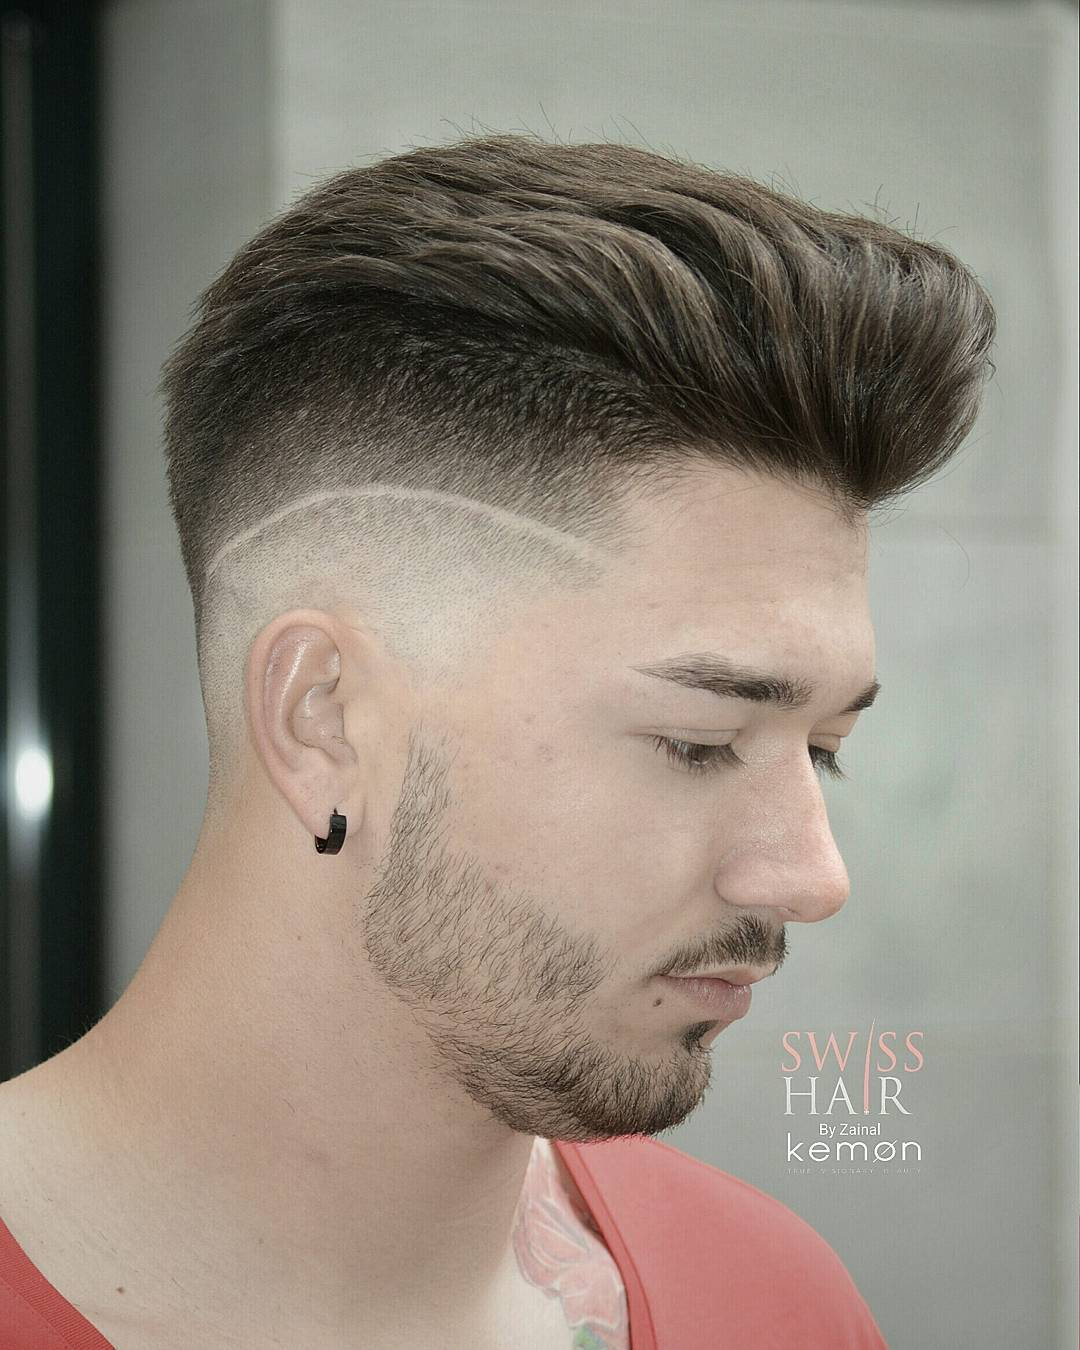 Communication on this topic: 23 Superb Short Haircut Ideas, 23-superb-short-haircut-ideas/